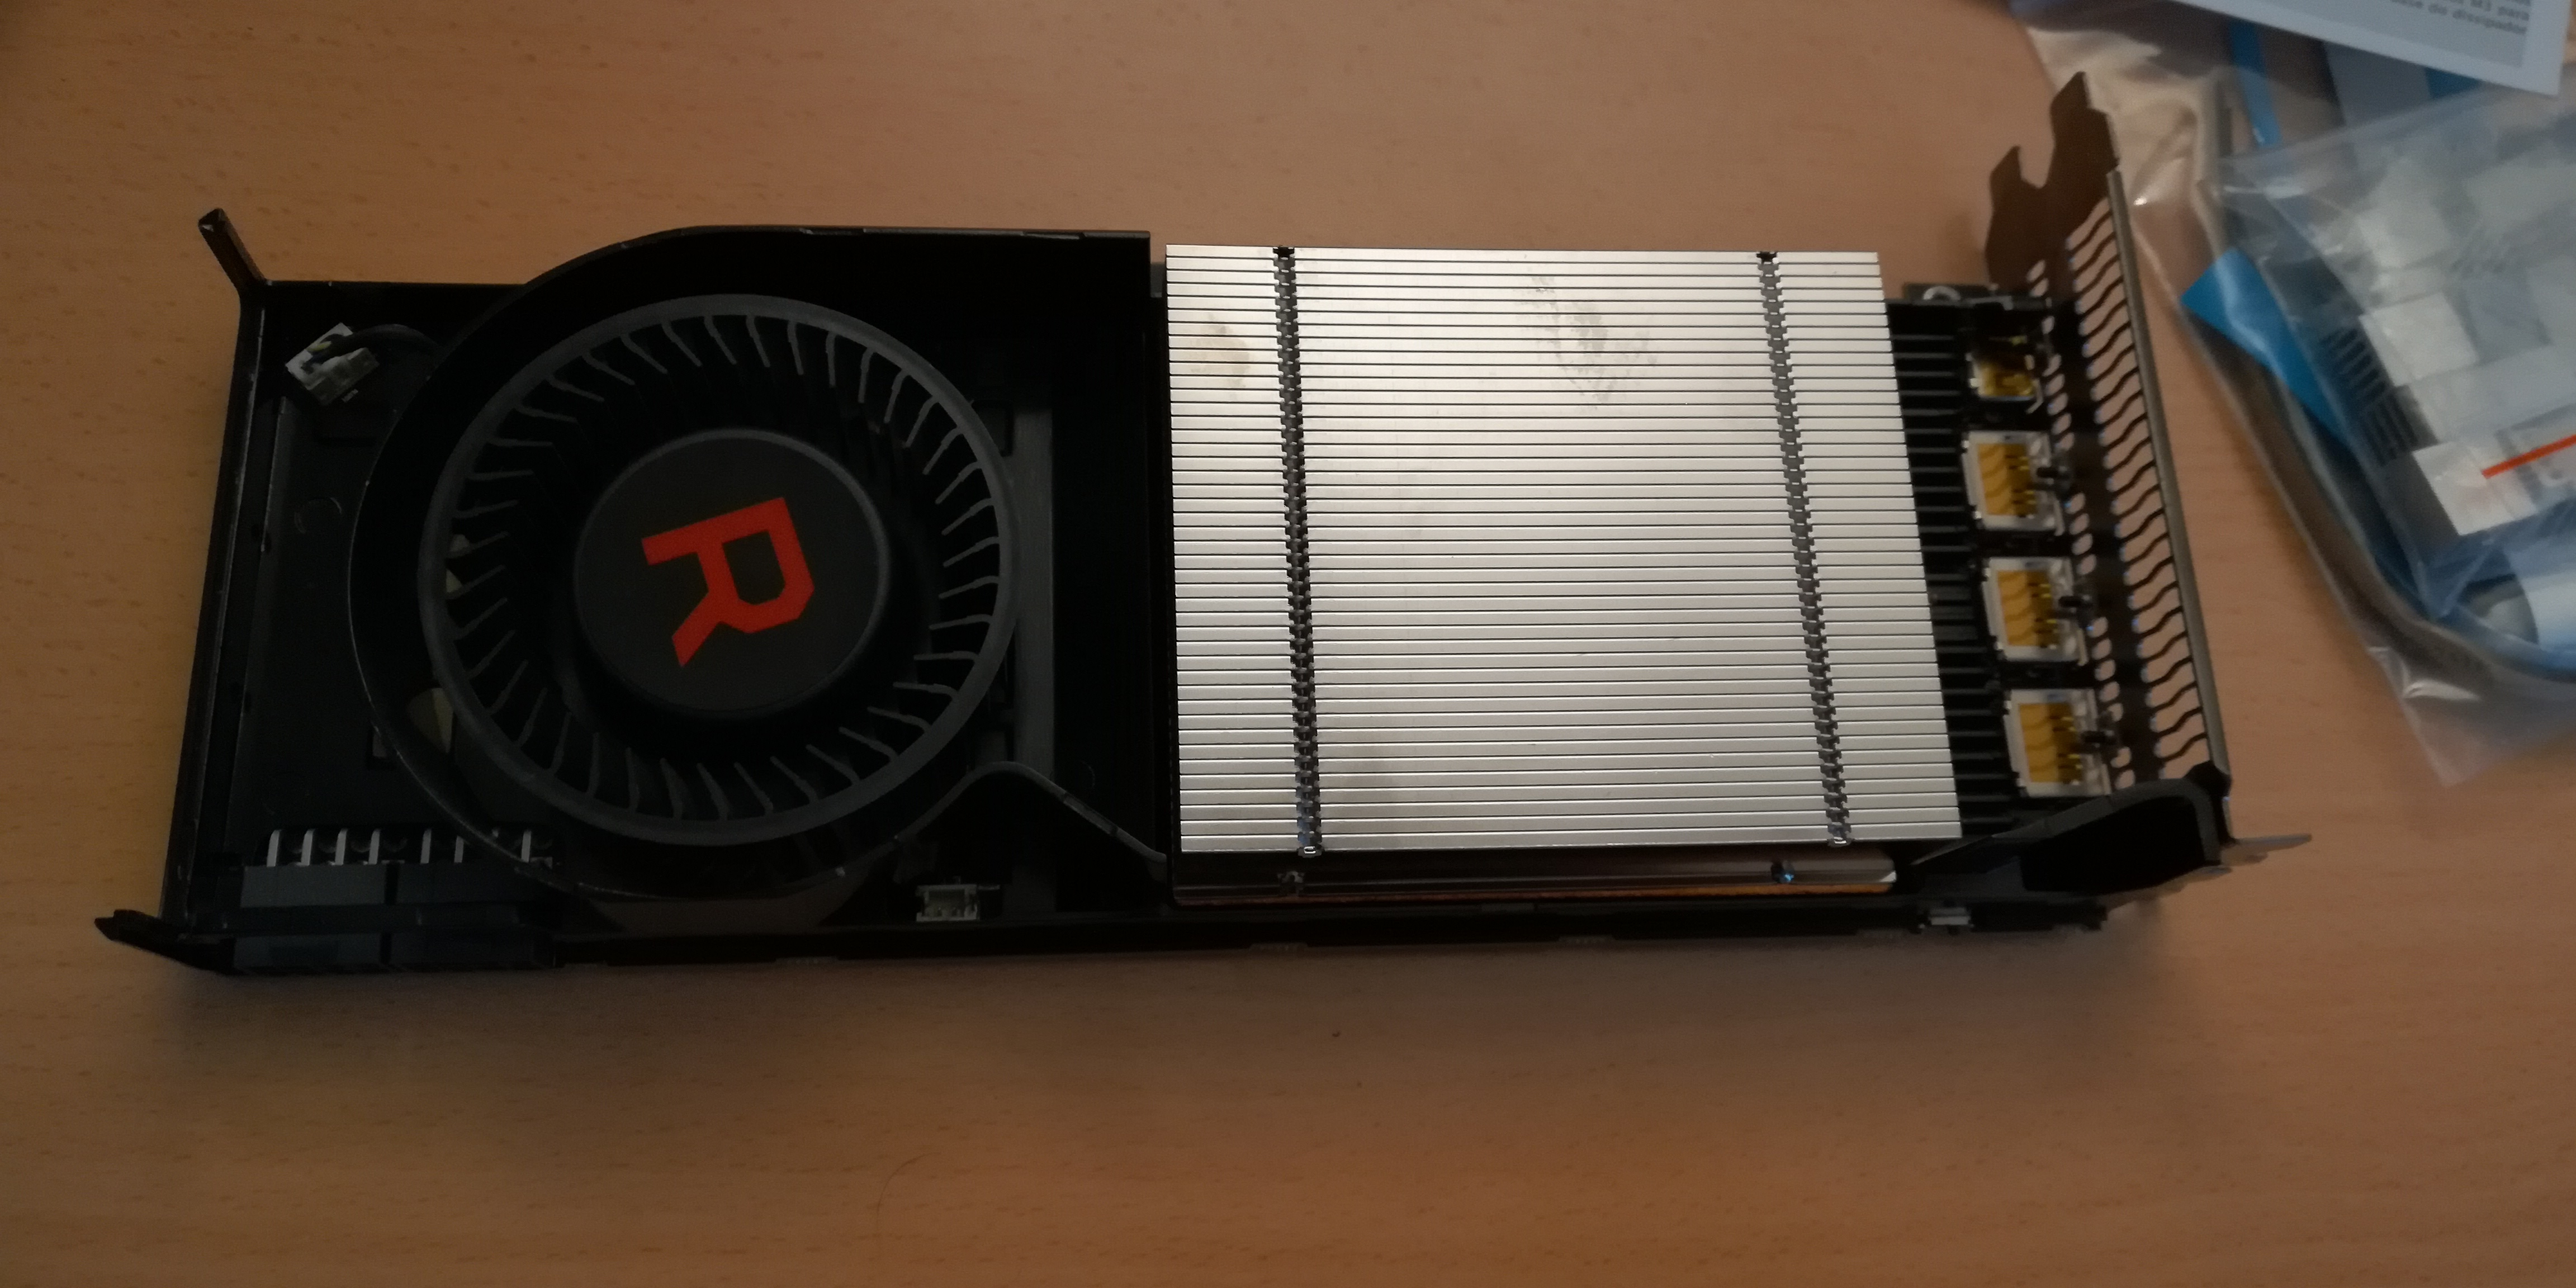 Vega56: Modification and Perfomance   Learning by doing